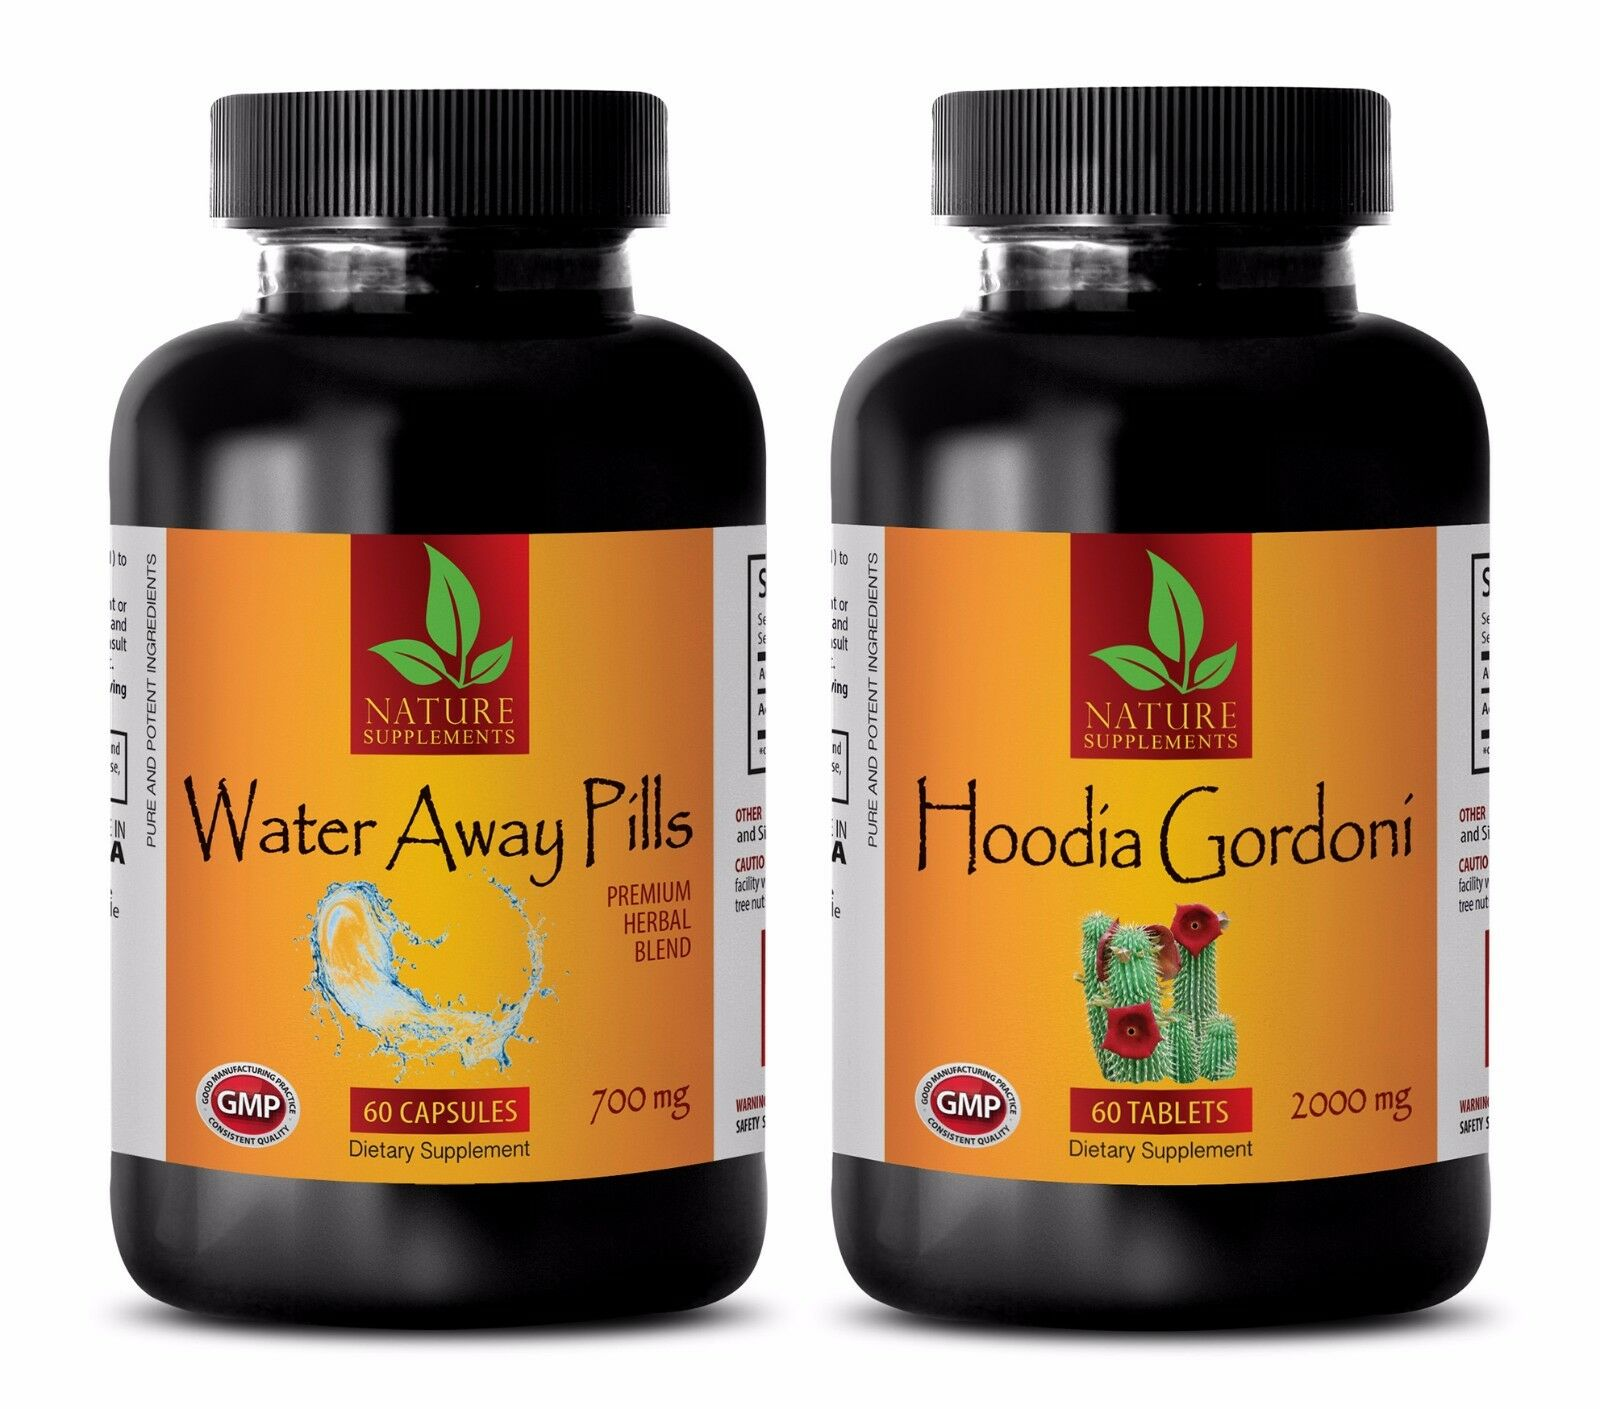 Weight loss pills for women - WATER AWAY – HOODIA GORDONII